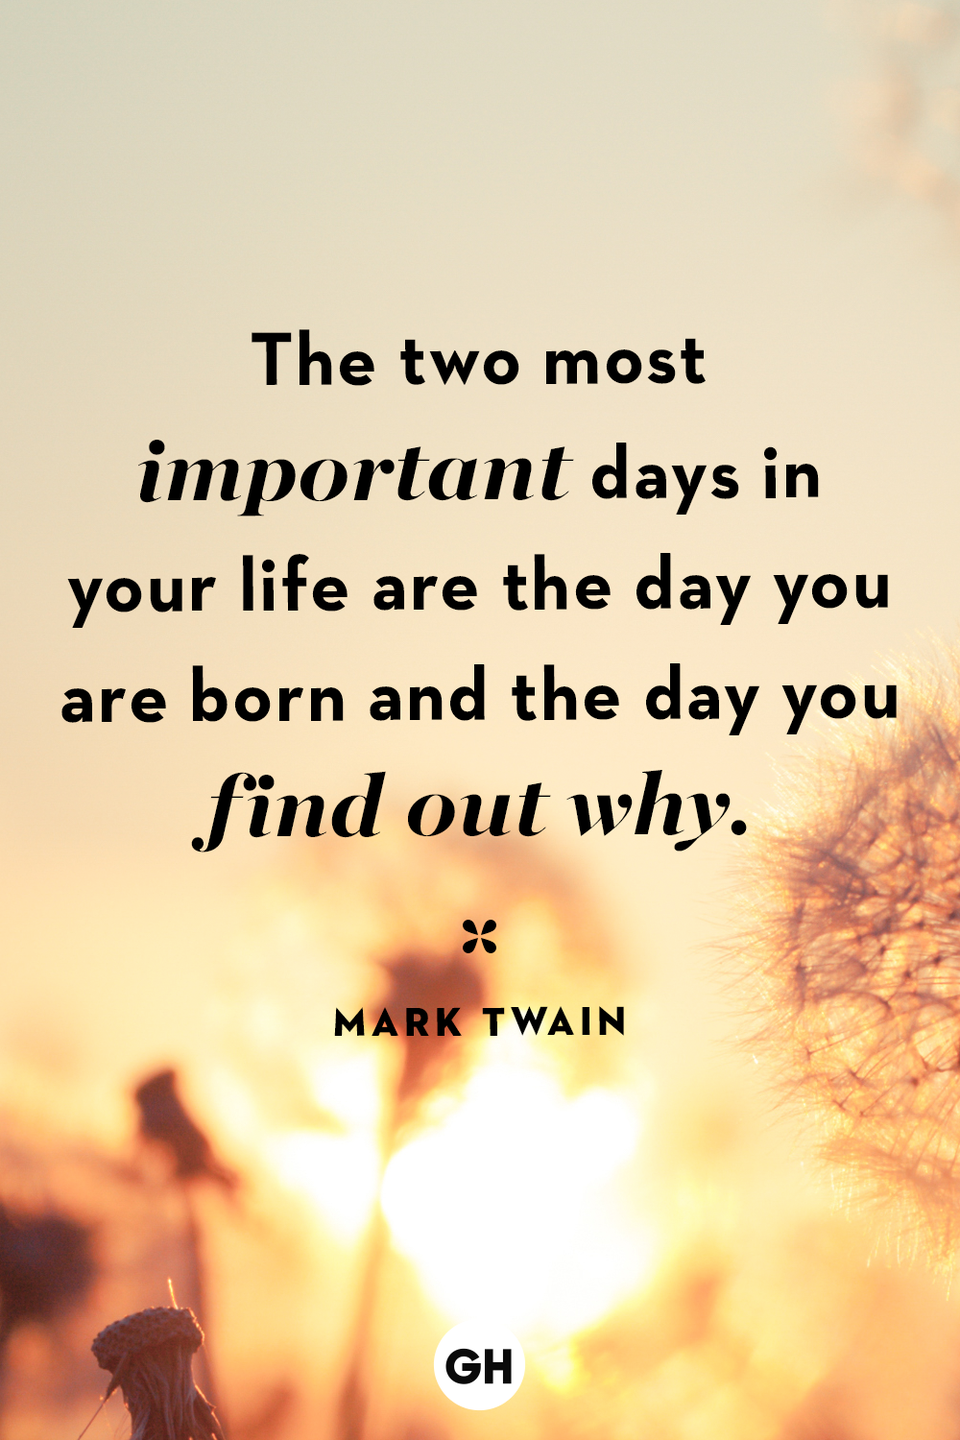 <p>The two most important days in your life are the day you are born and the day you find out why. </p>